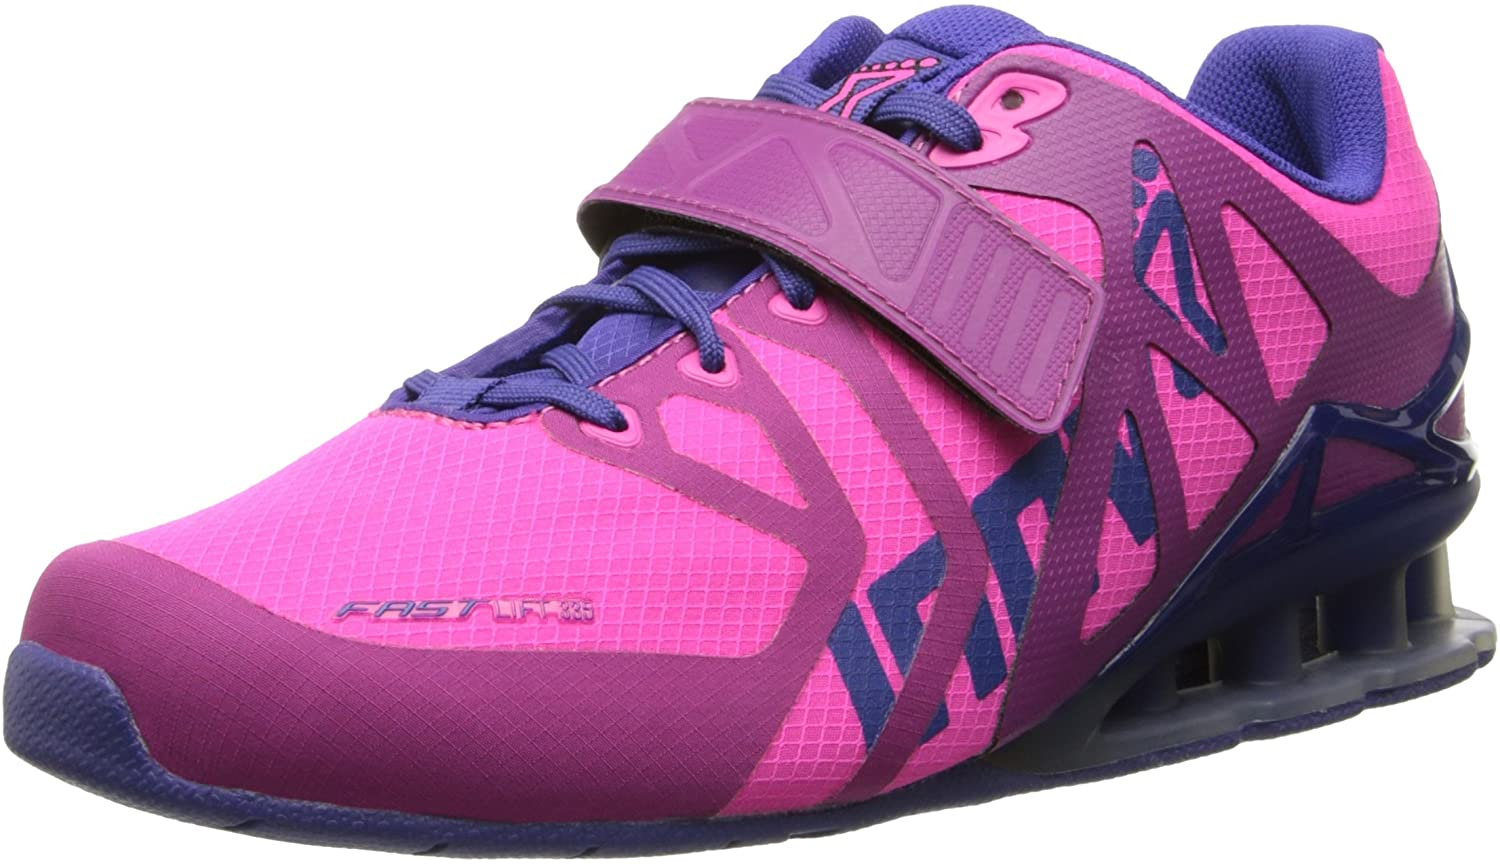 best sneakers for lifting women's